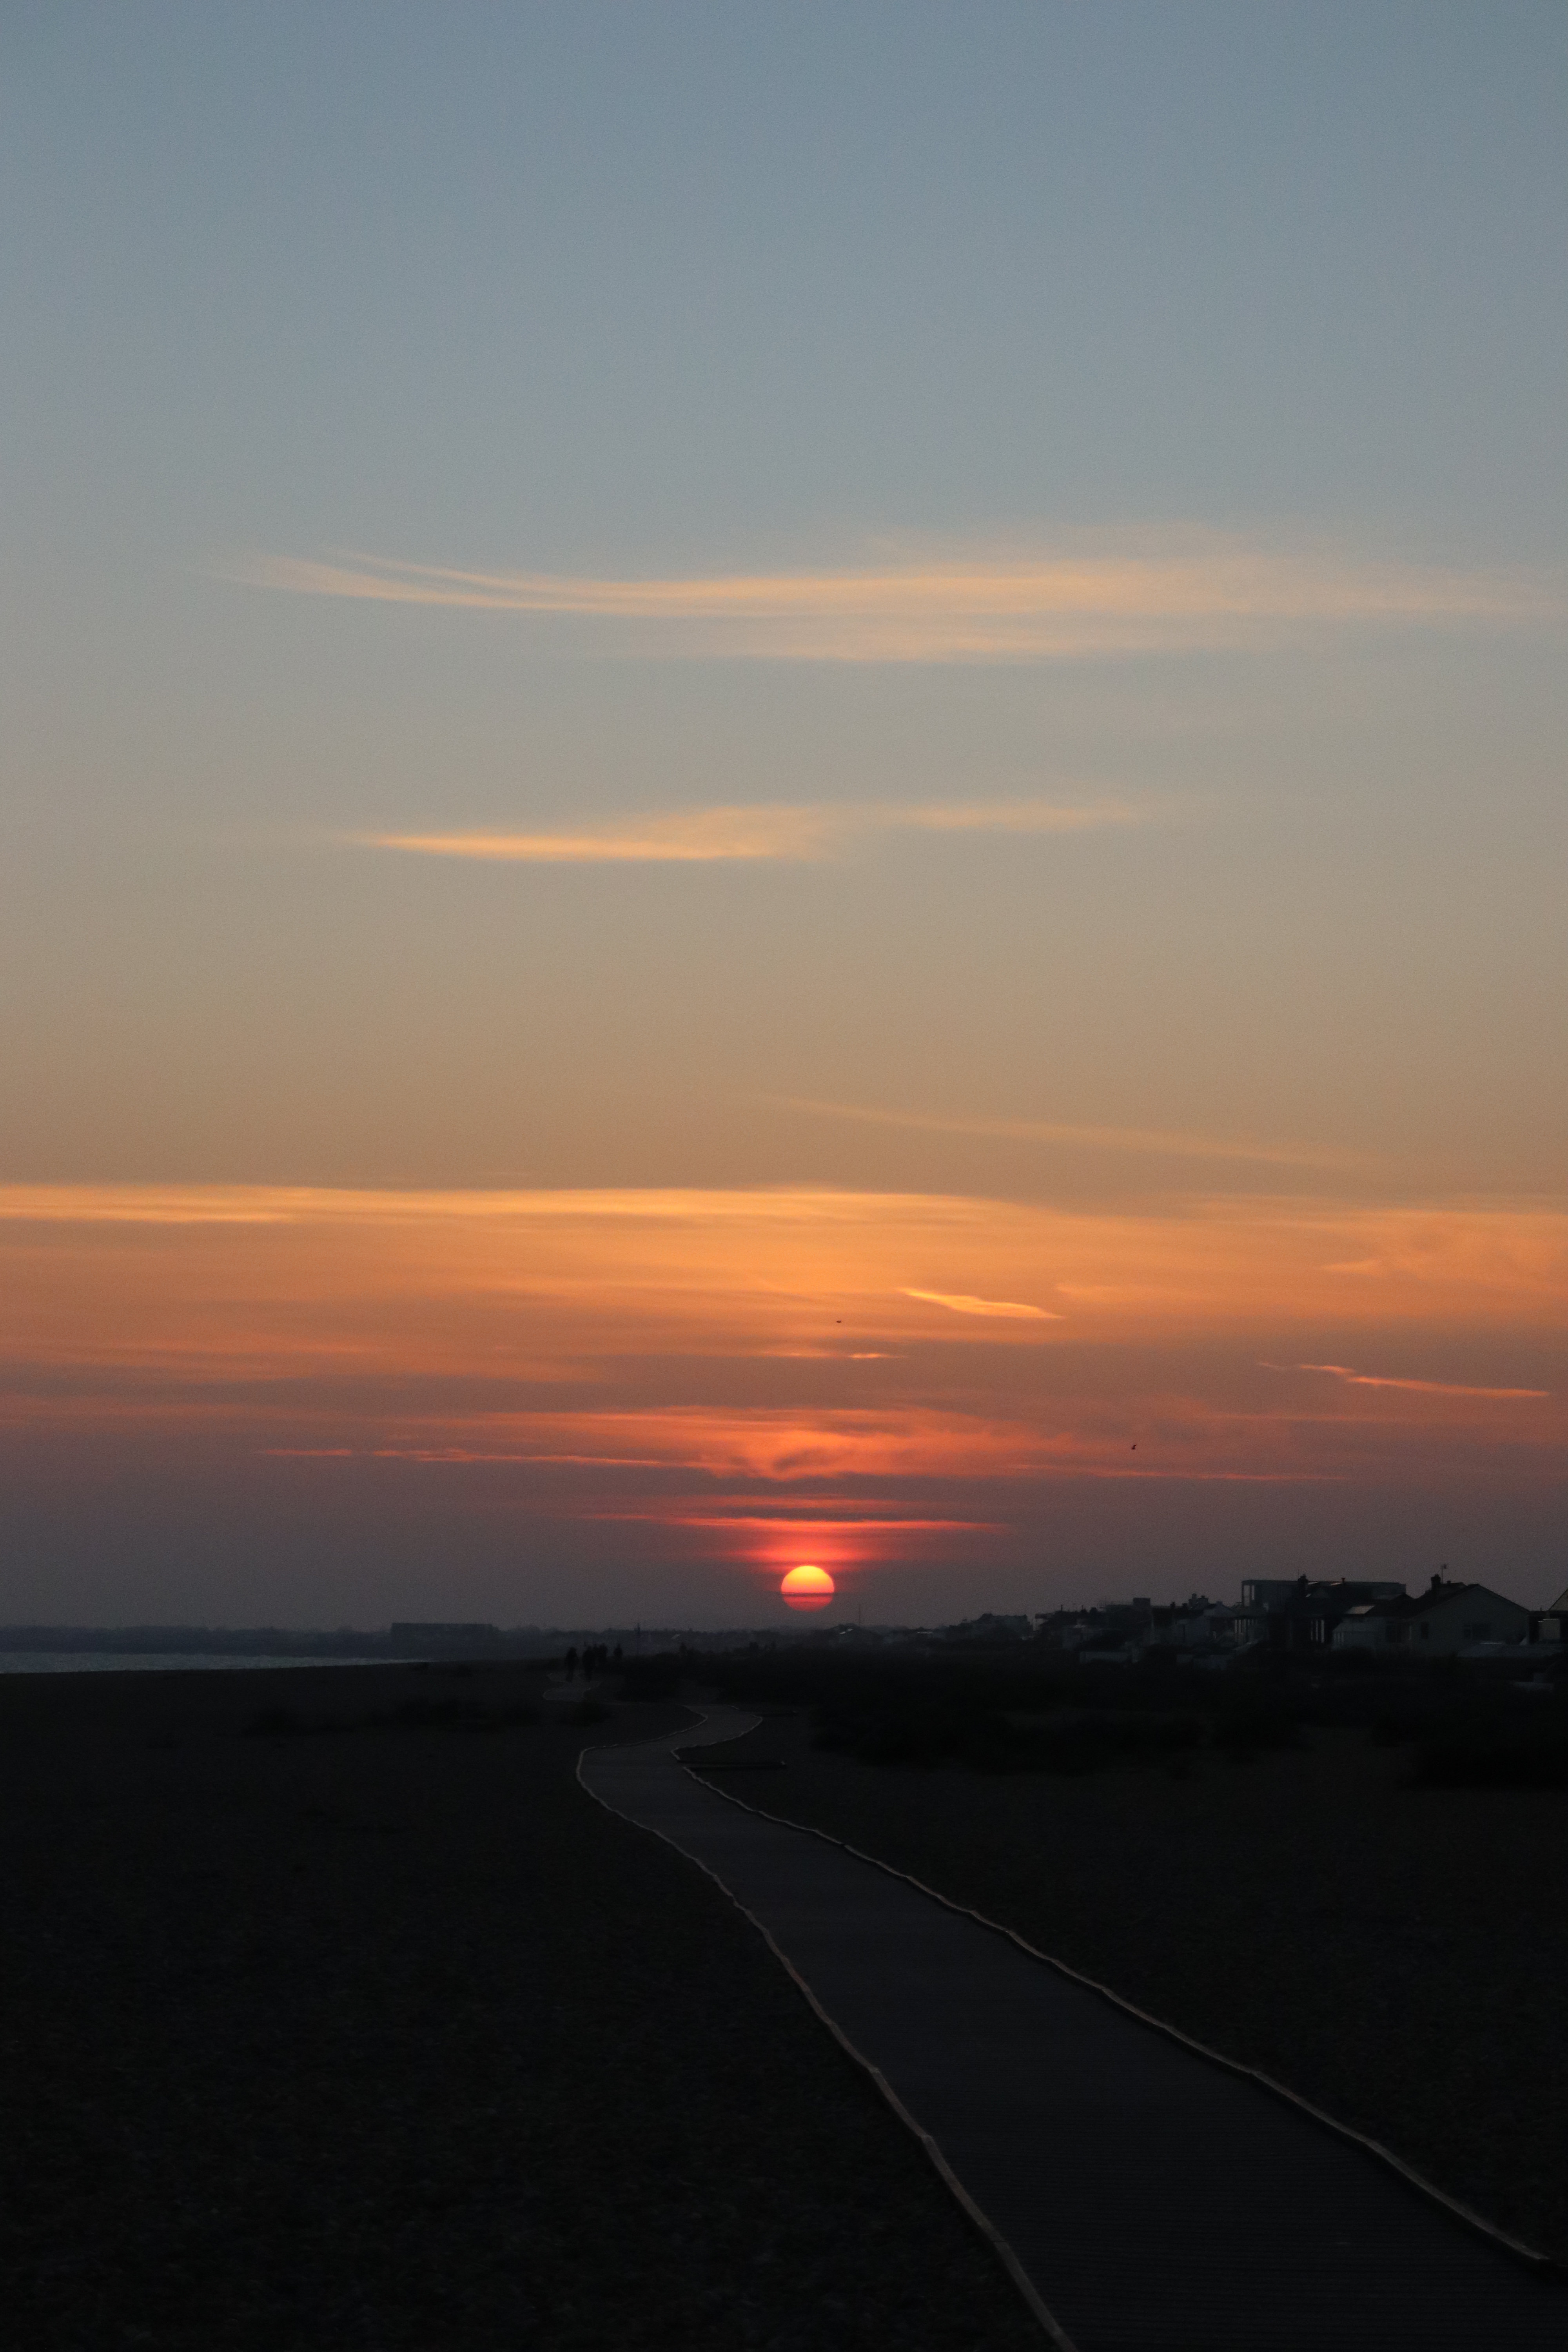 Red sunset reflecting off the clouds over Shoreham beach's boardwalk.